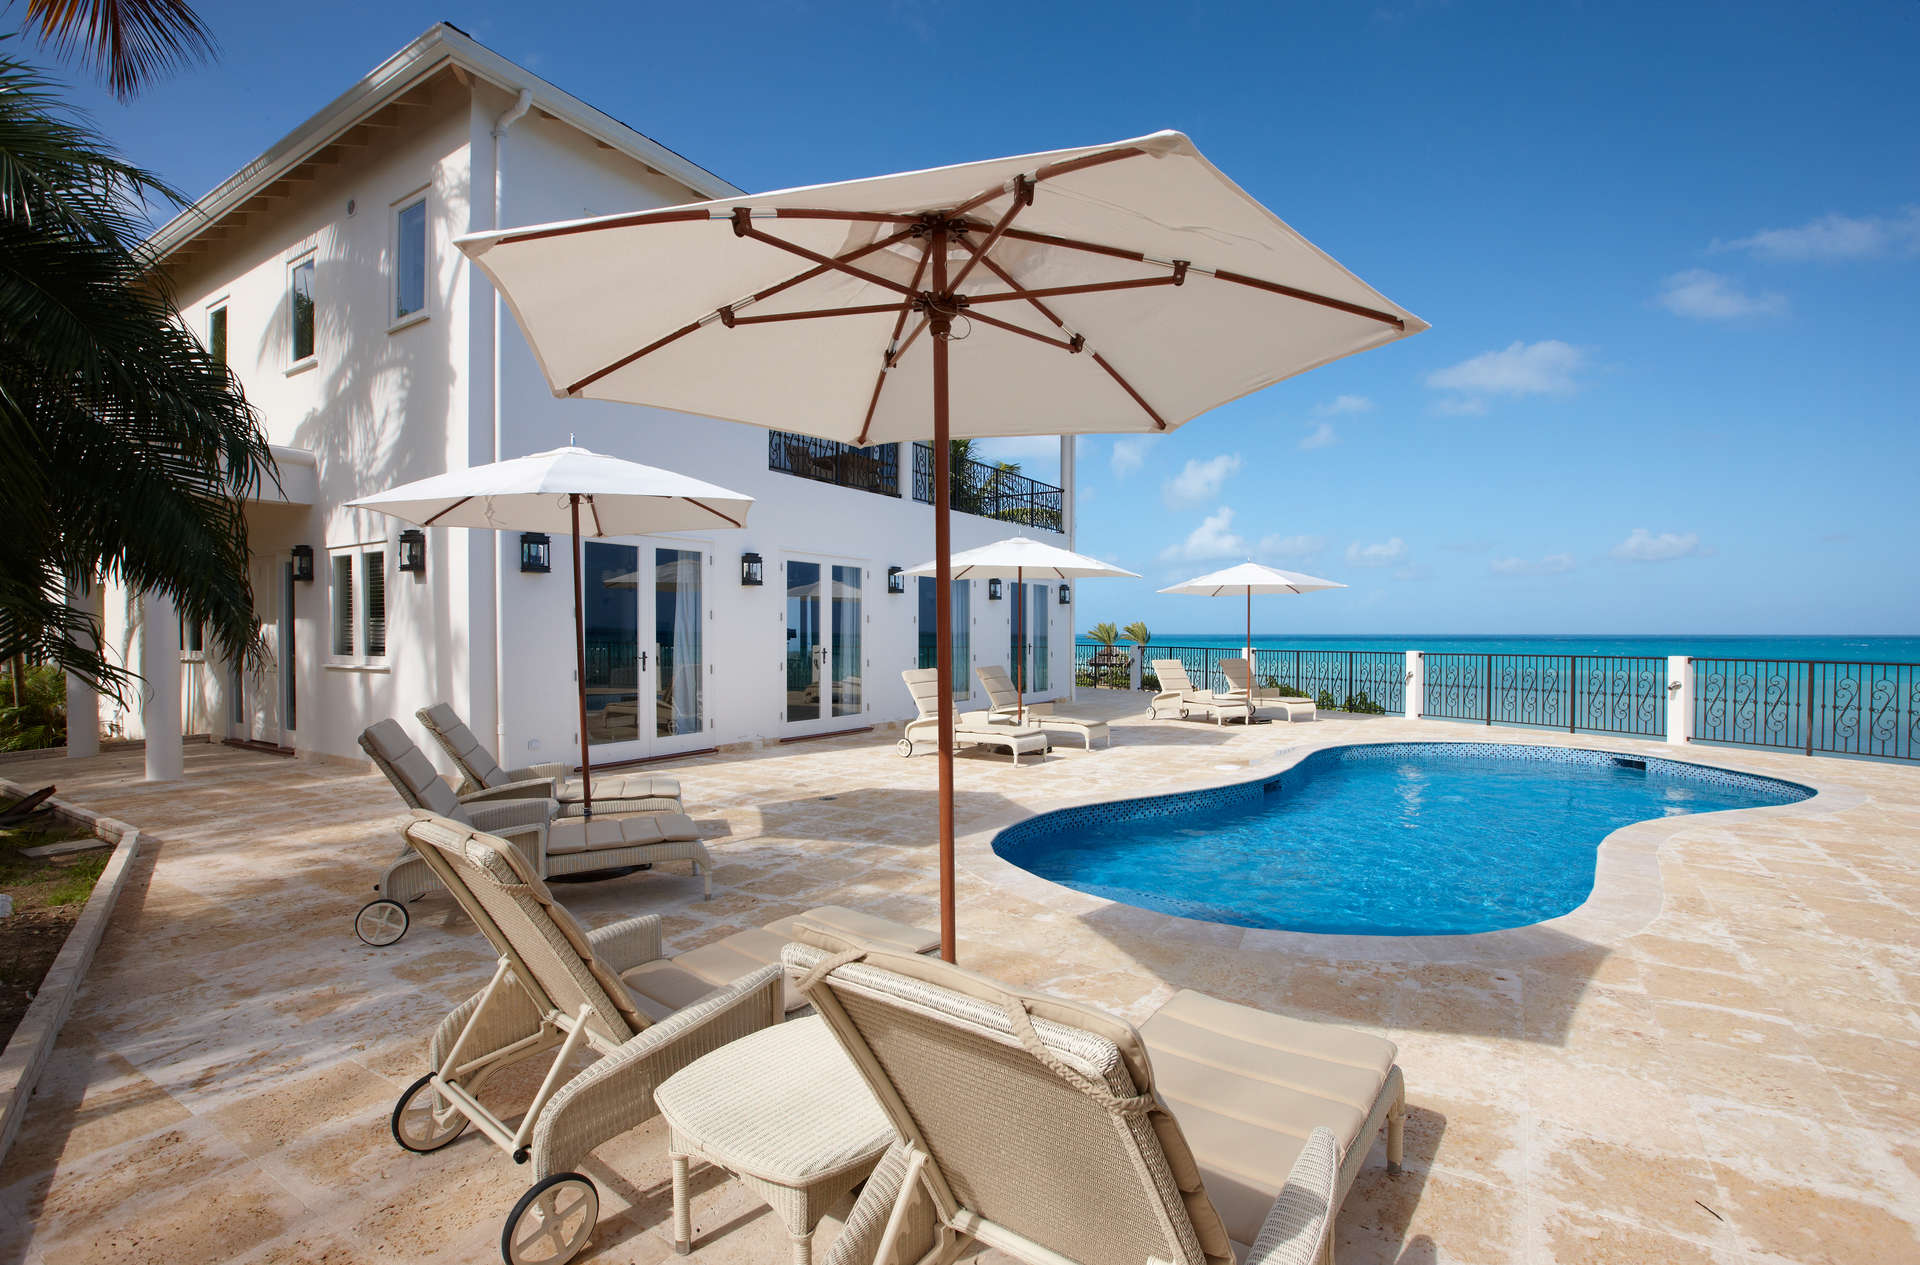 Luxury villa rentals caribbean - Antigua - Blue waters resort and spa - No location 4 - Turtle Cottage - Image 1/10